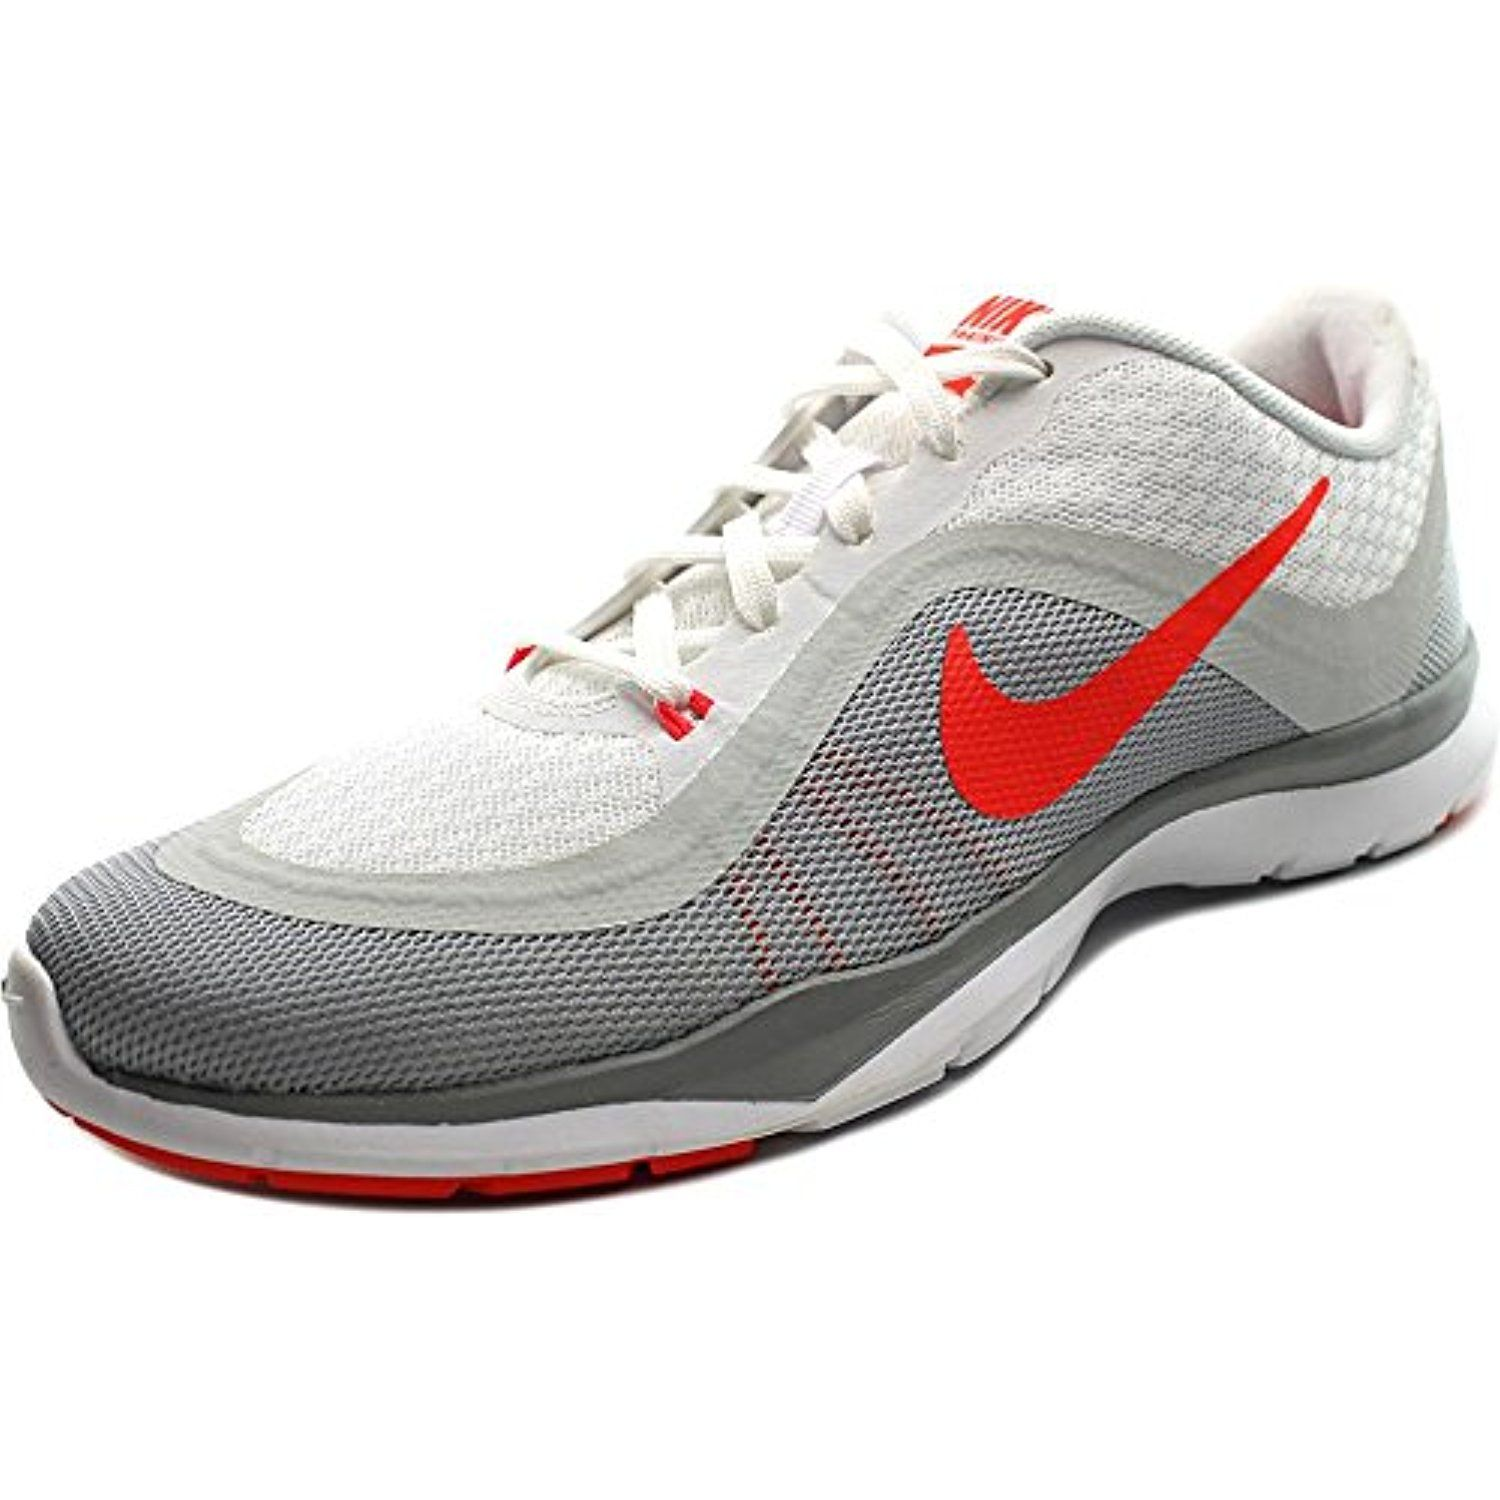 fbfded87e1f Nike Flex Trainer 6 Women US 7 Gray Running Shoe. The style name is Flex  Trainer The style number is 831217 Brand Color  White Bright Crmsn-Pr  Pltnm-Wlf ...